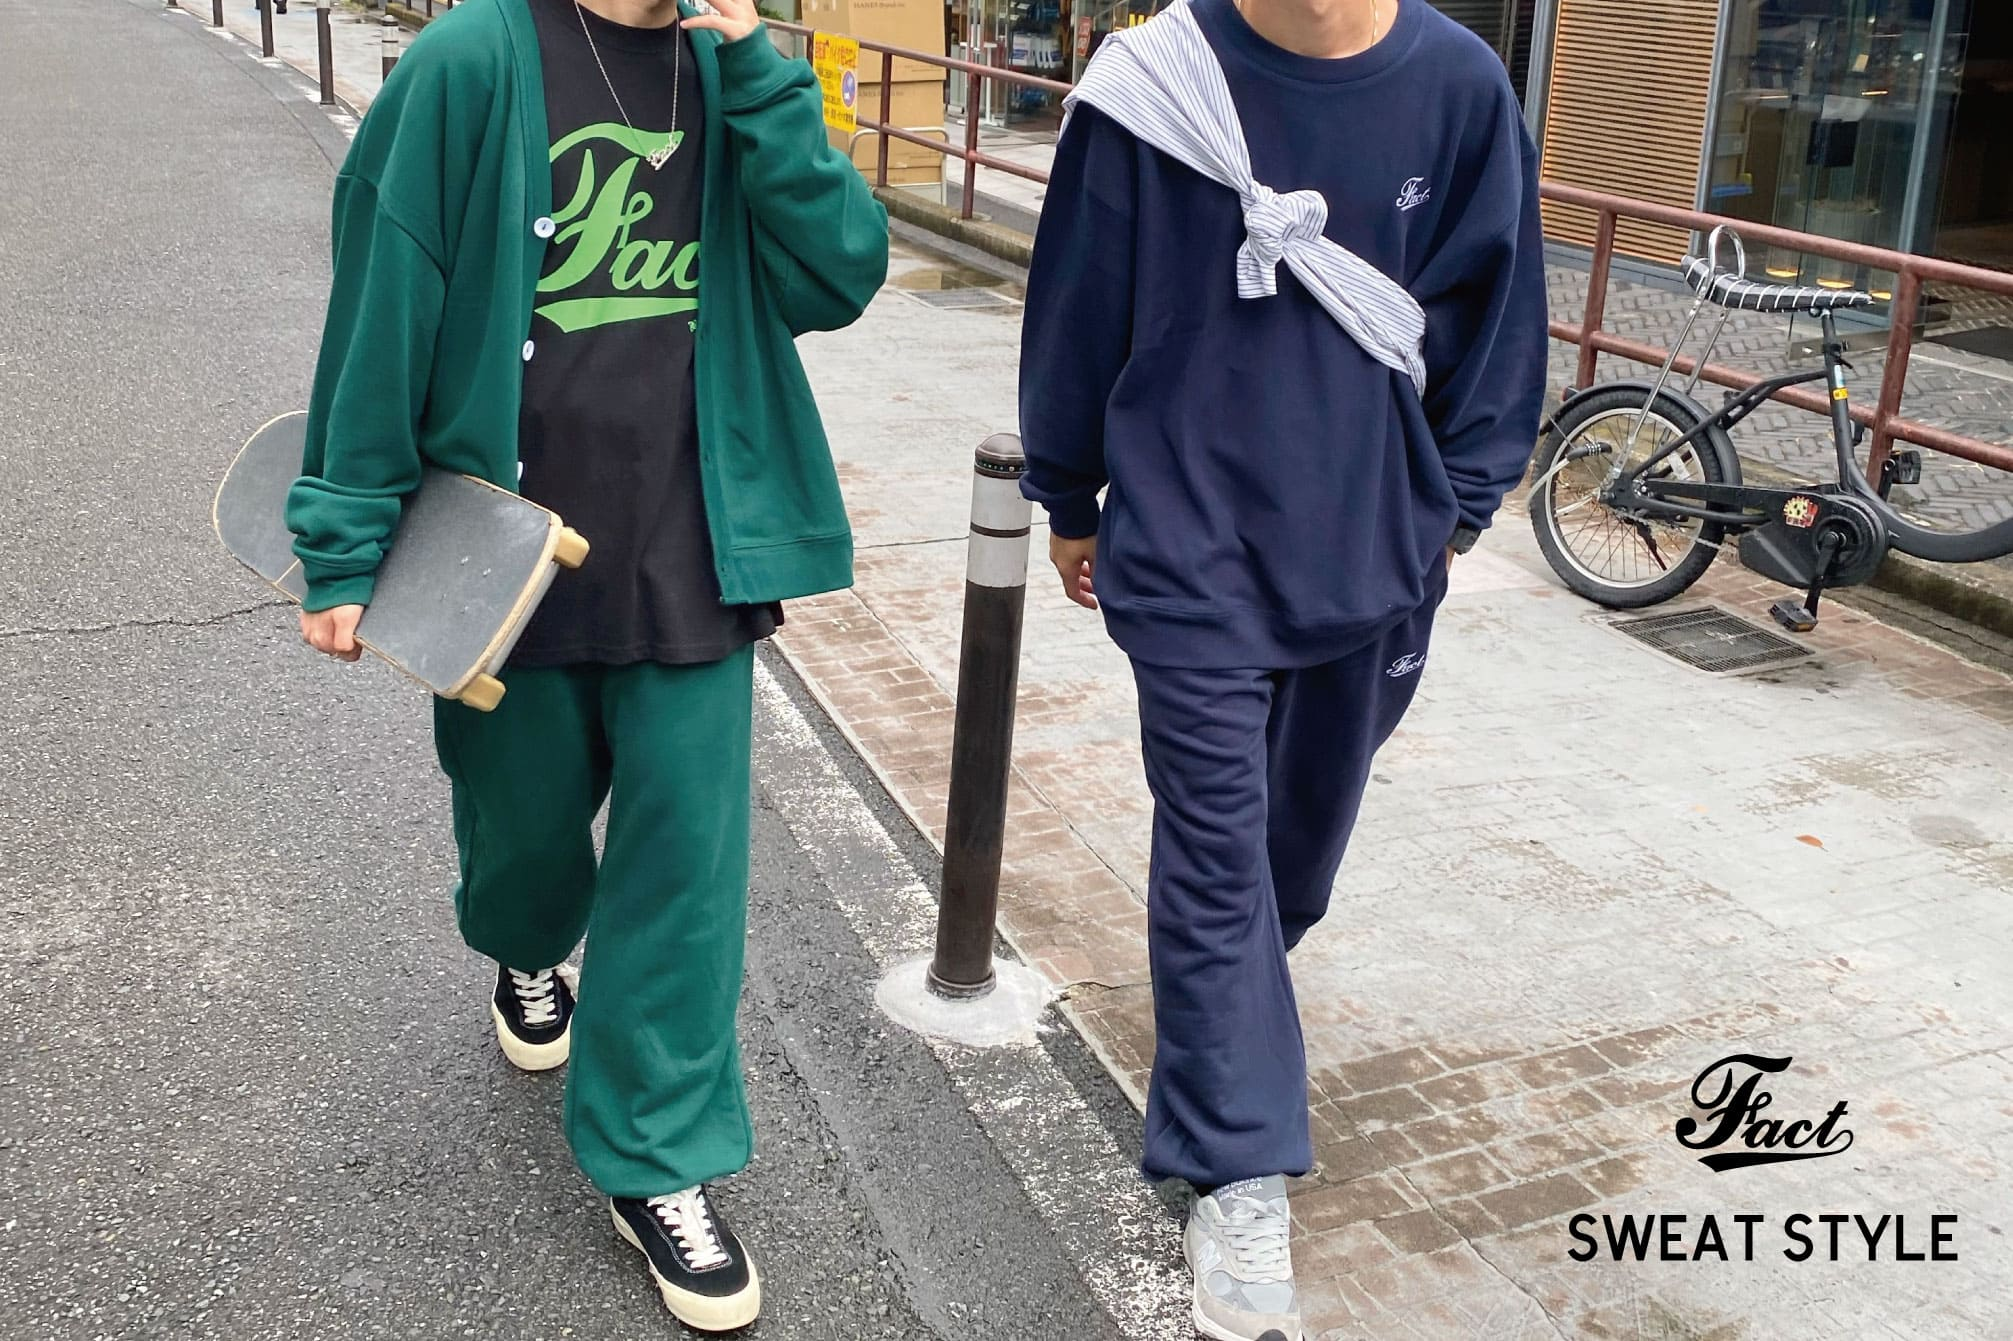 WHO'S WHO gallery 【FACT SWEATS】